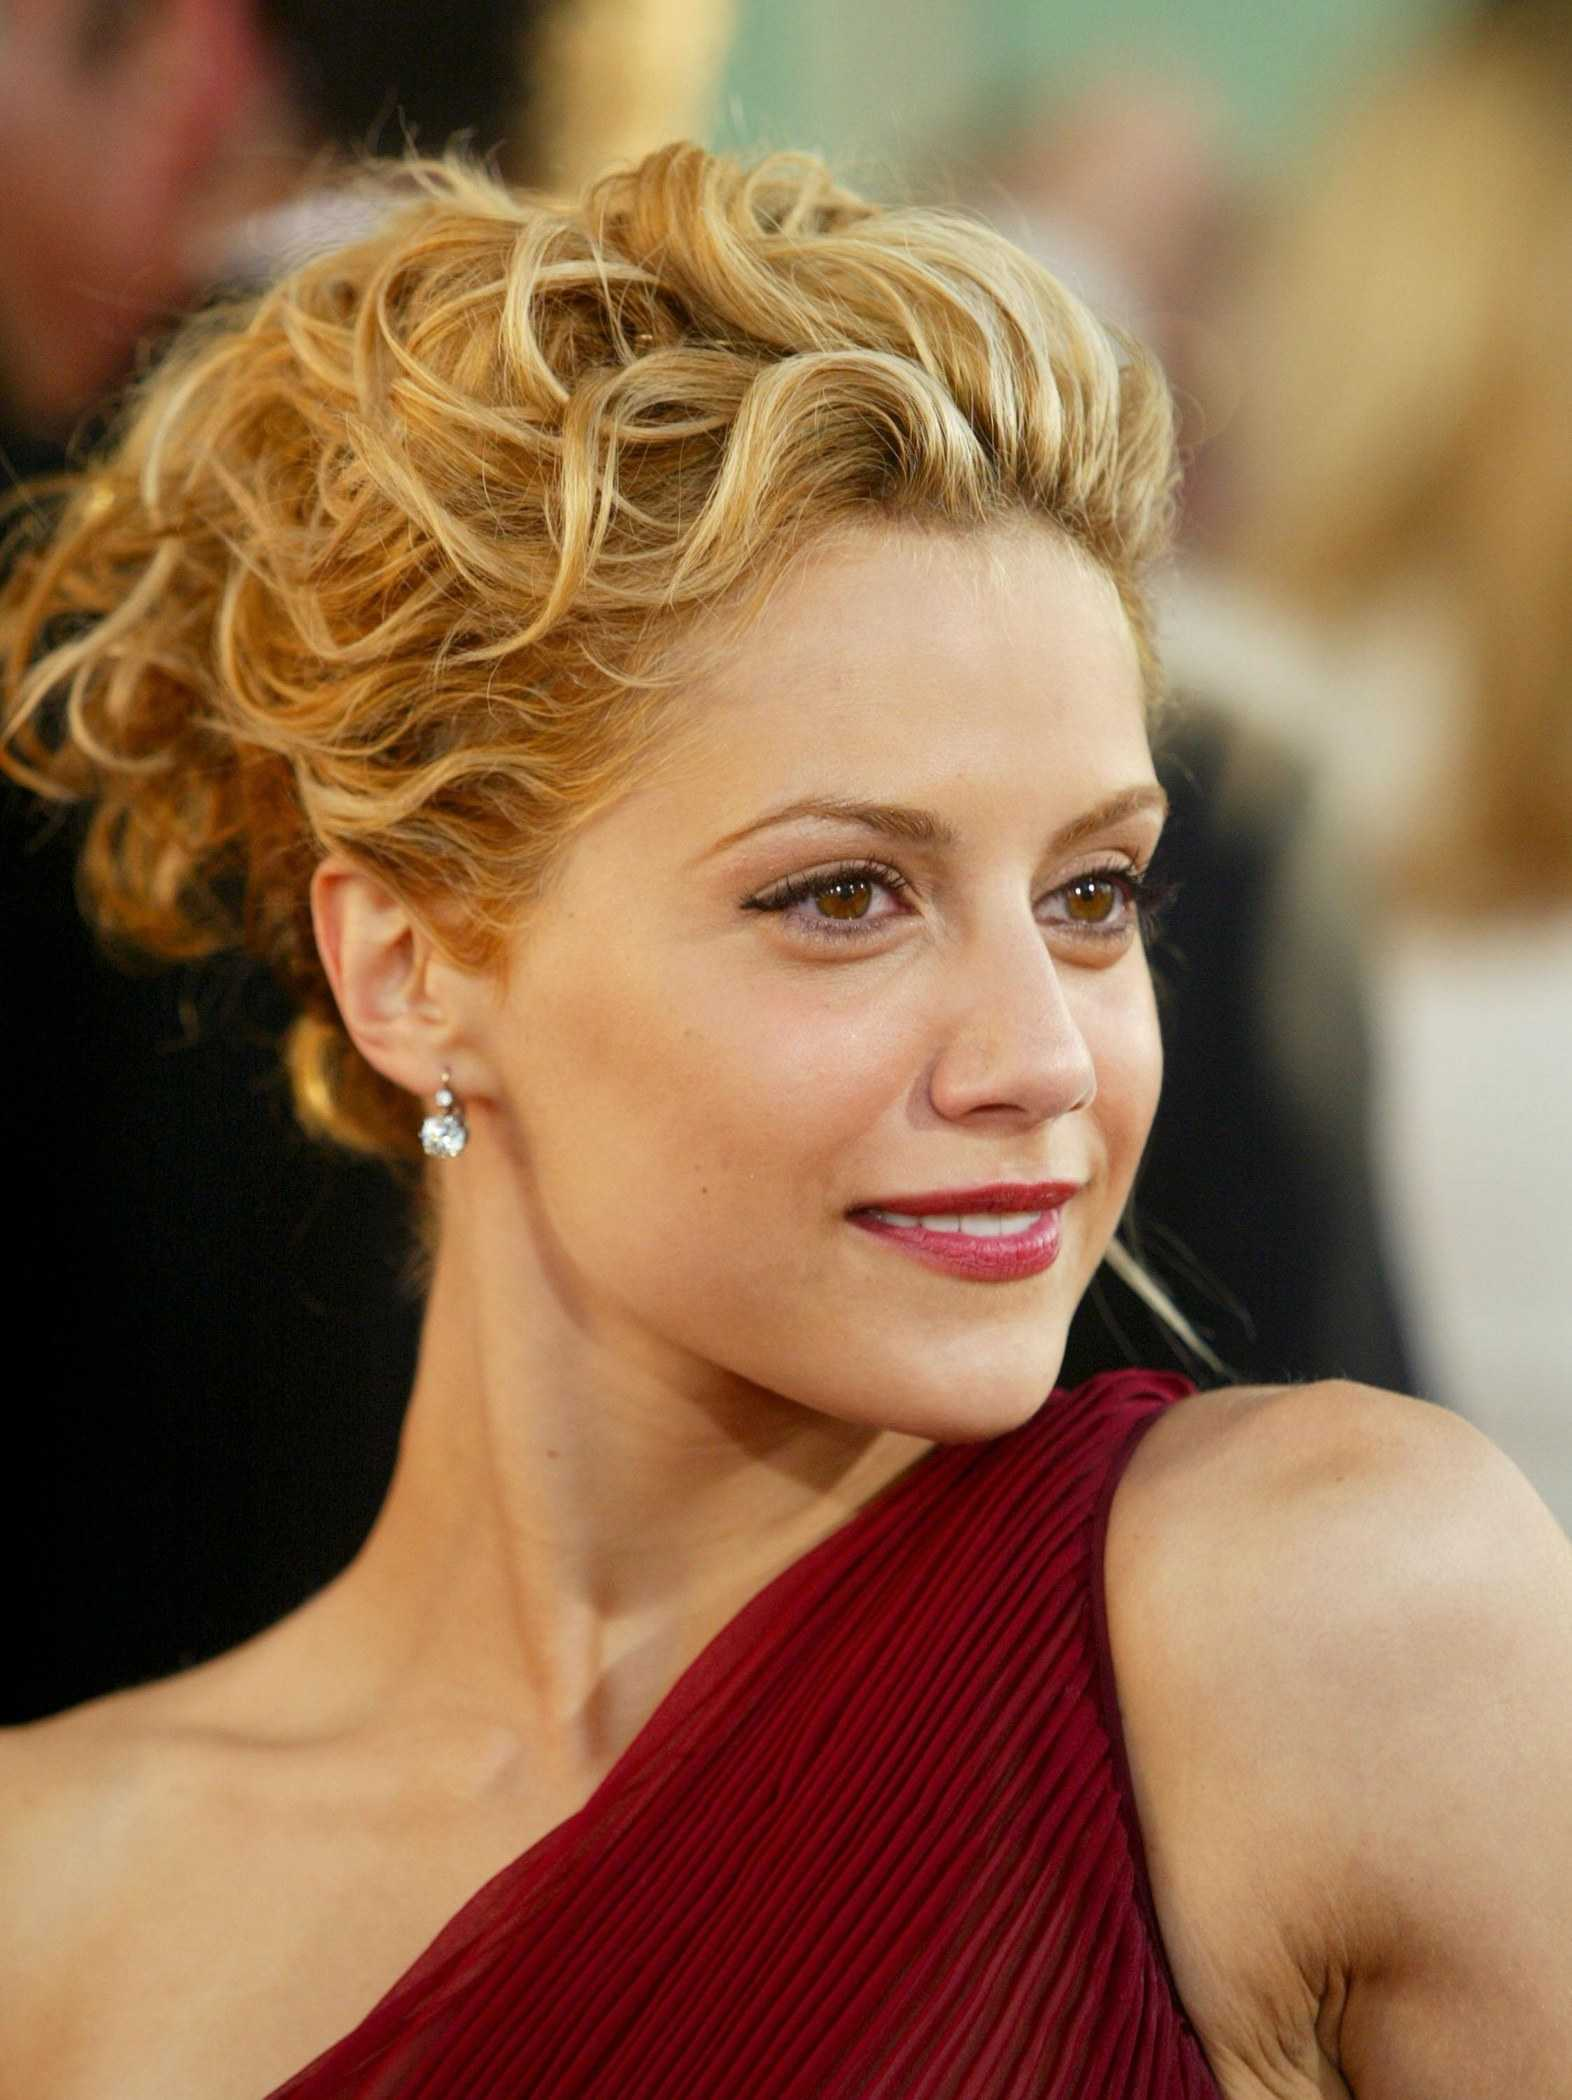 Brittany Murphy May Have Been Killed With Rat Poison According To New Lab Report Findings